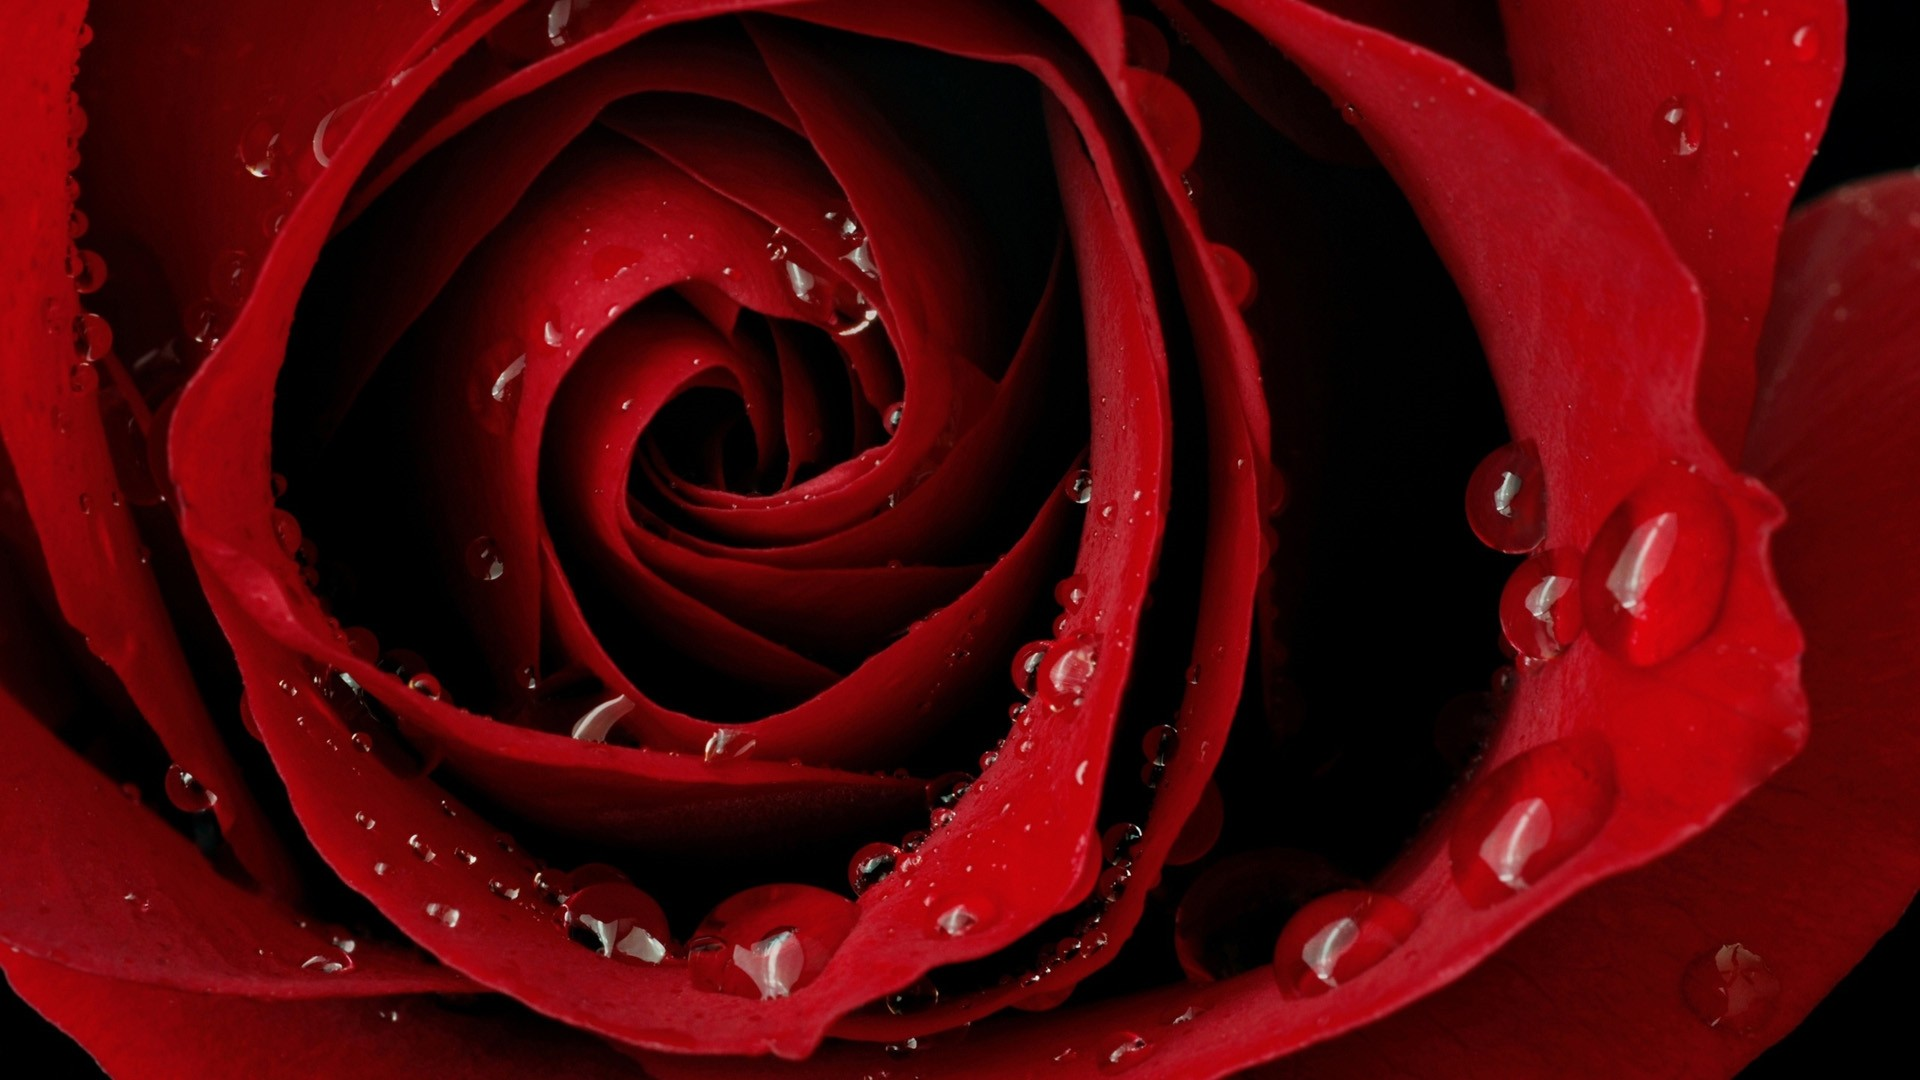 Red Rose HD Wallpaper